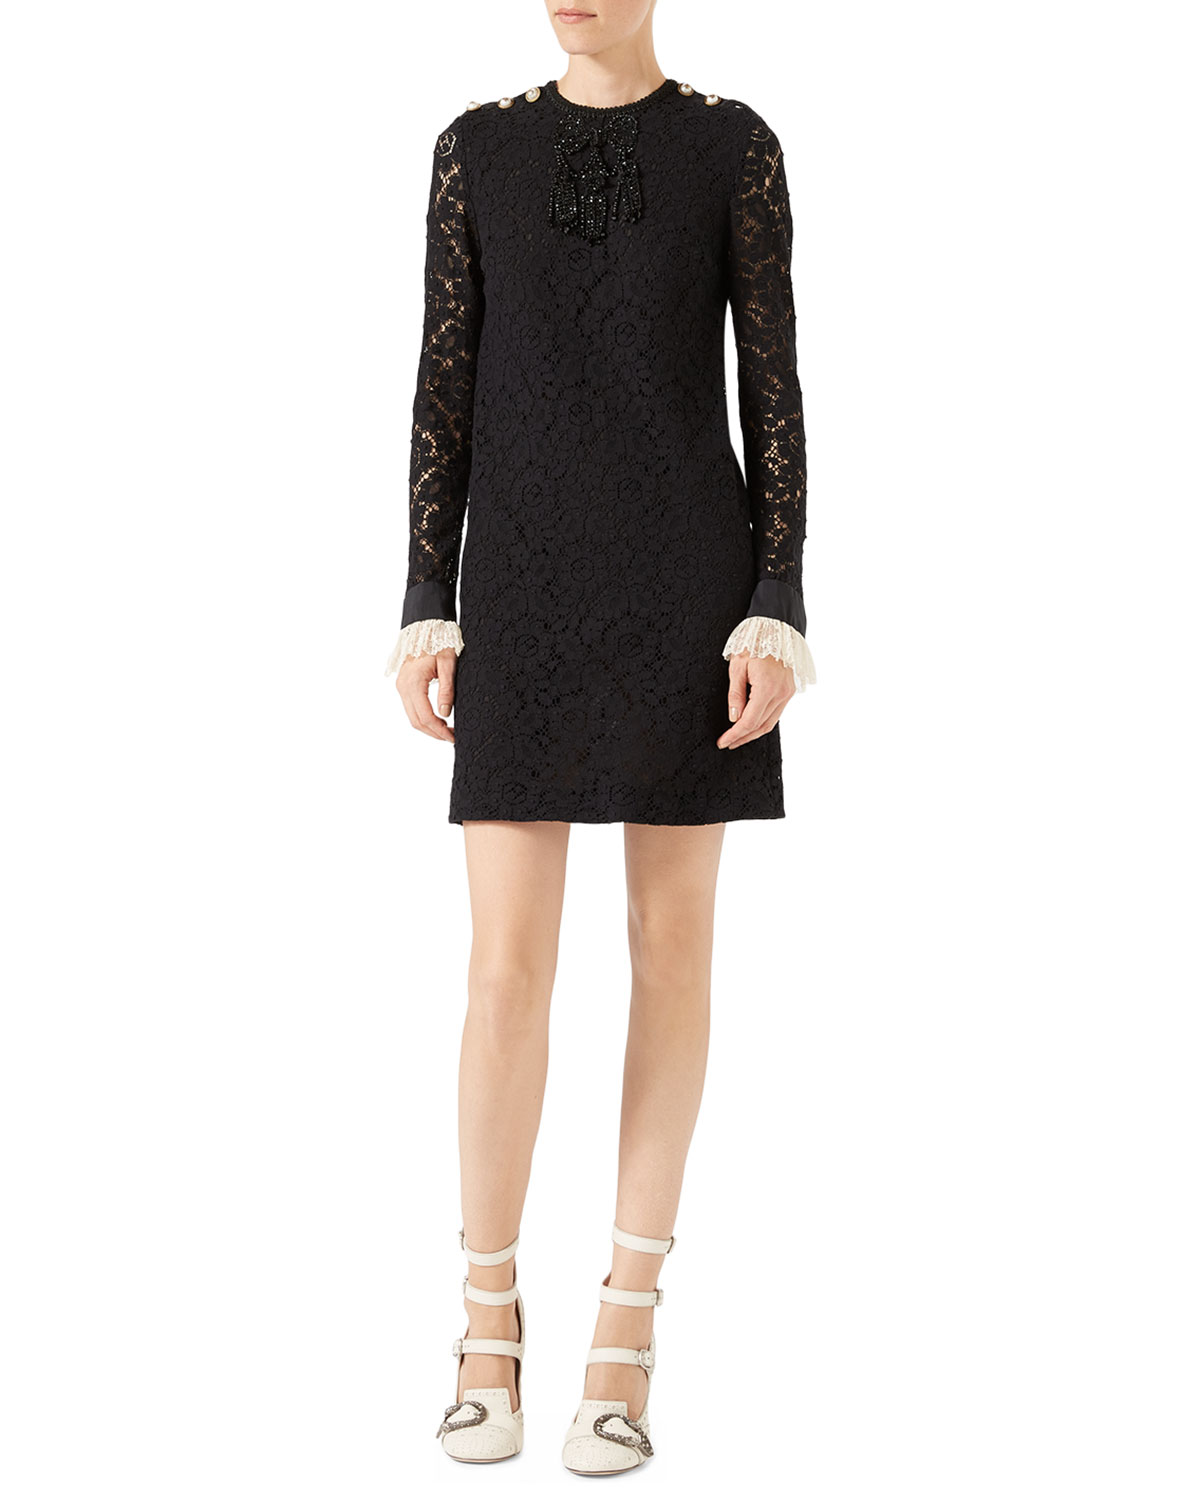 25b8339d3 Gucci Embroidered Cluny Lace Dress, Black | Neiman Marcus